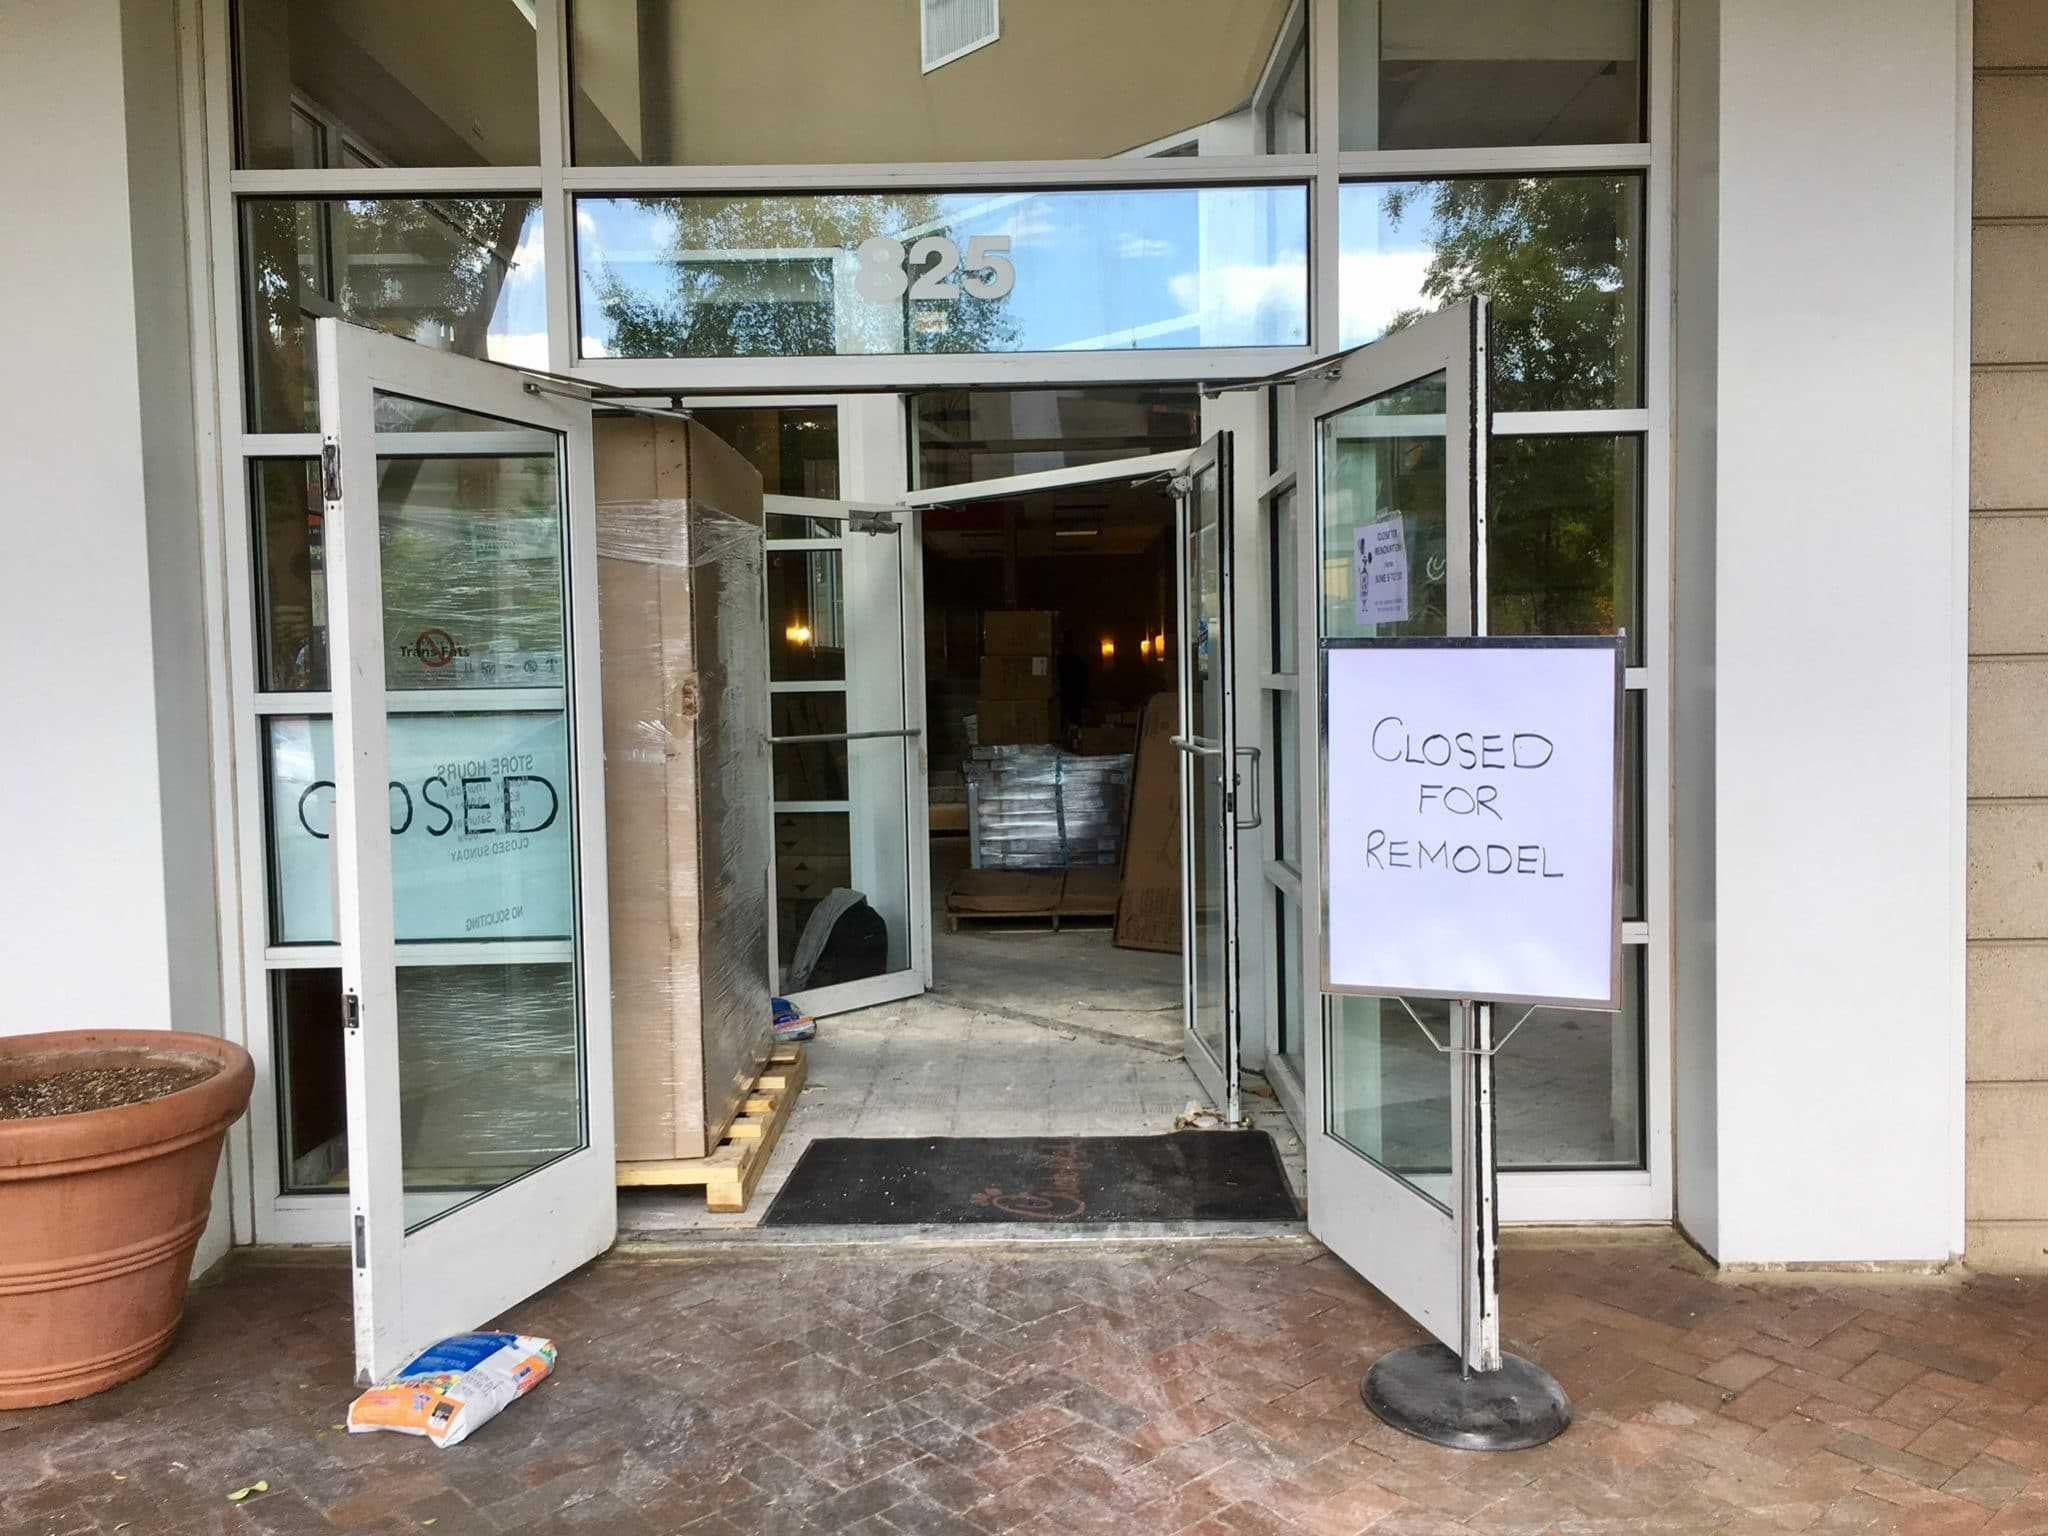 Chick-fil-A closed for remodeling - The Chick-fil-A restaurant at 825 Ellsworth Dr. in downtown Silver Spring is closed this week for remodeling.